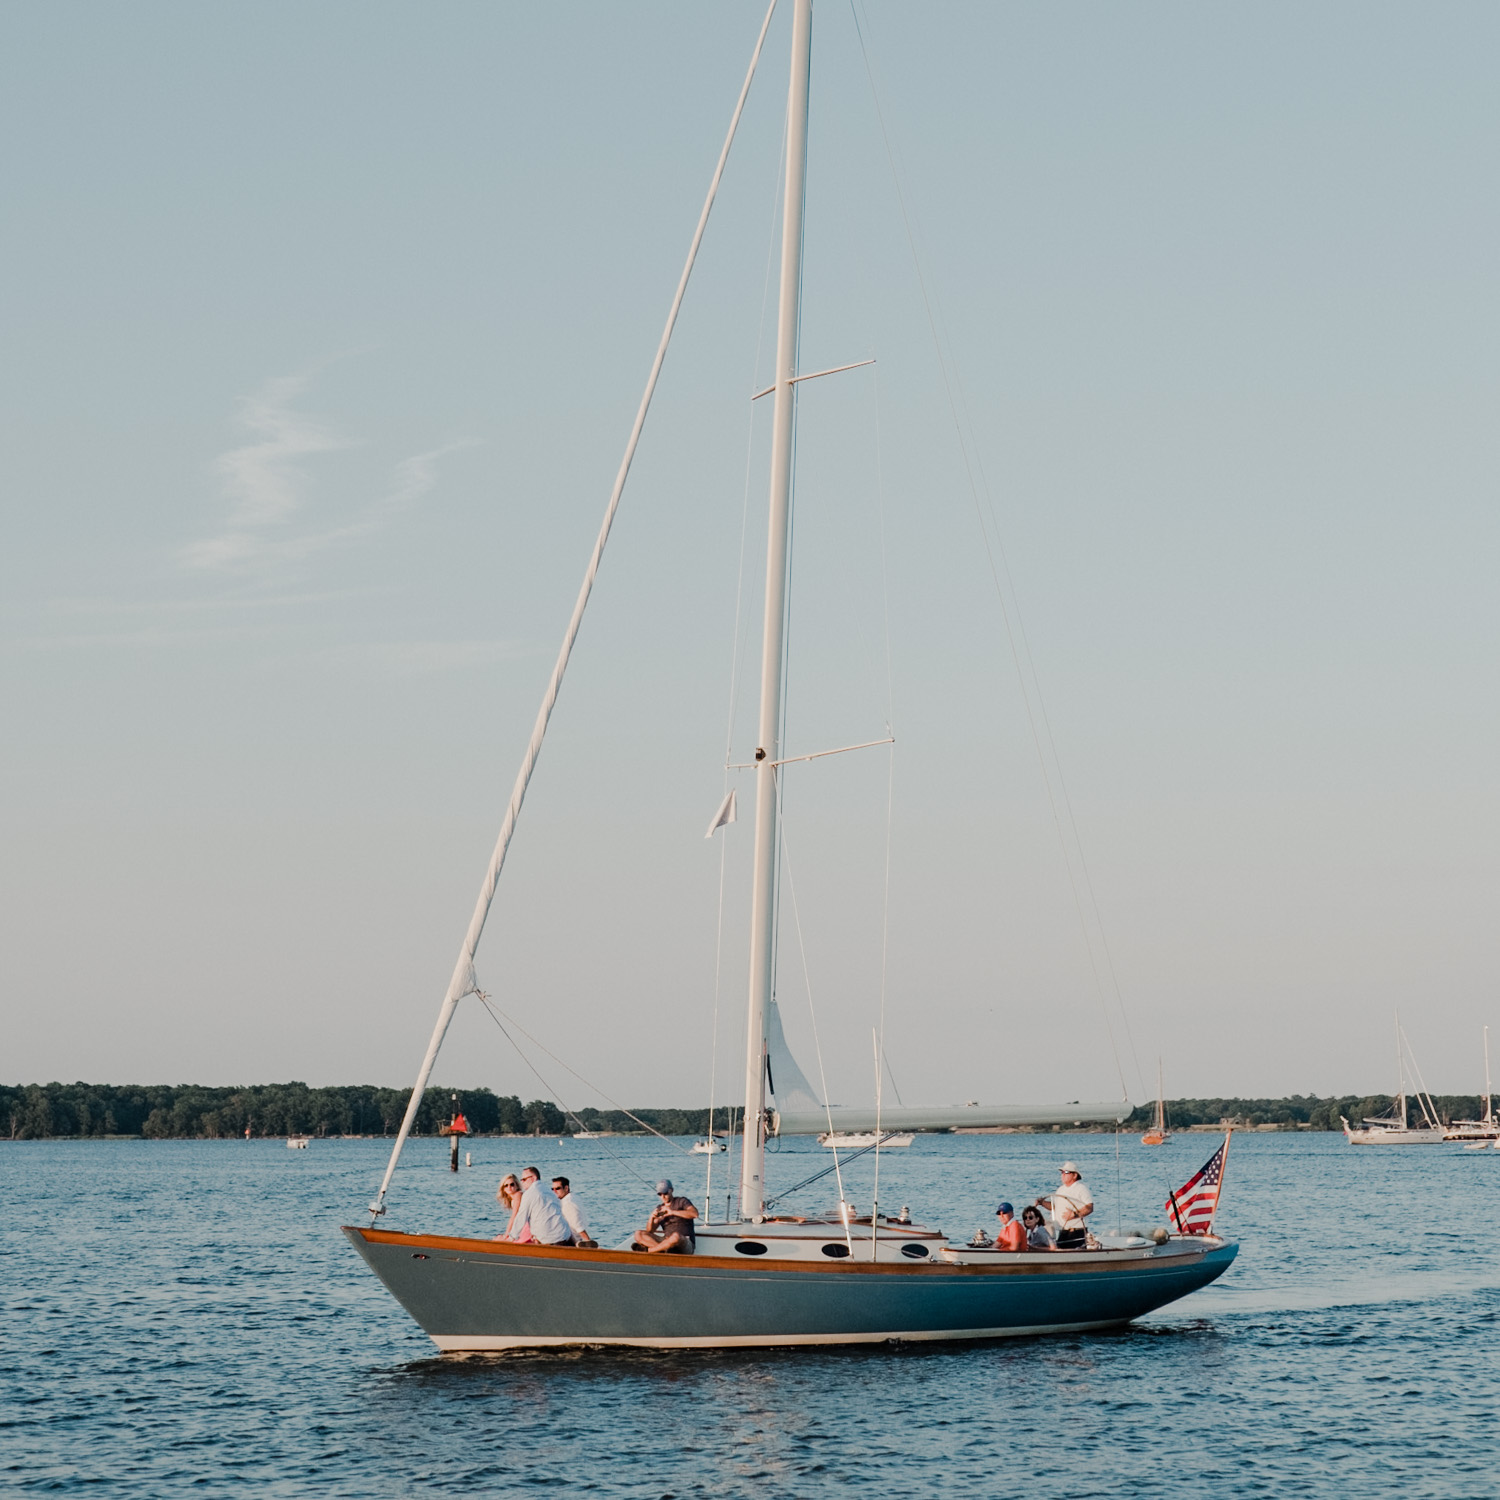 st michael's wedding sailboat on the water passing reception tent up close